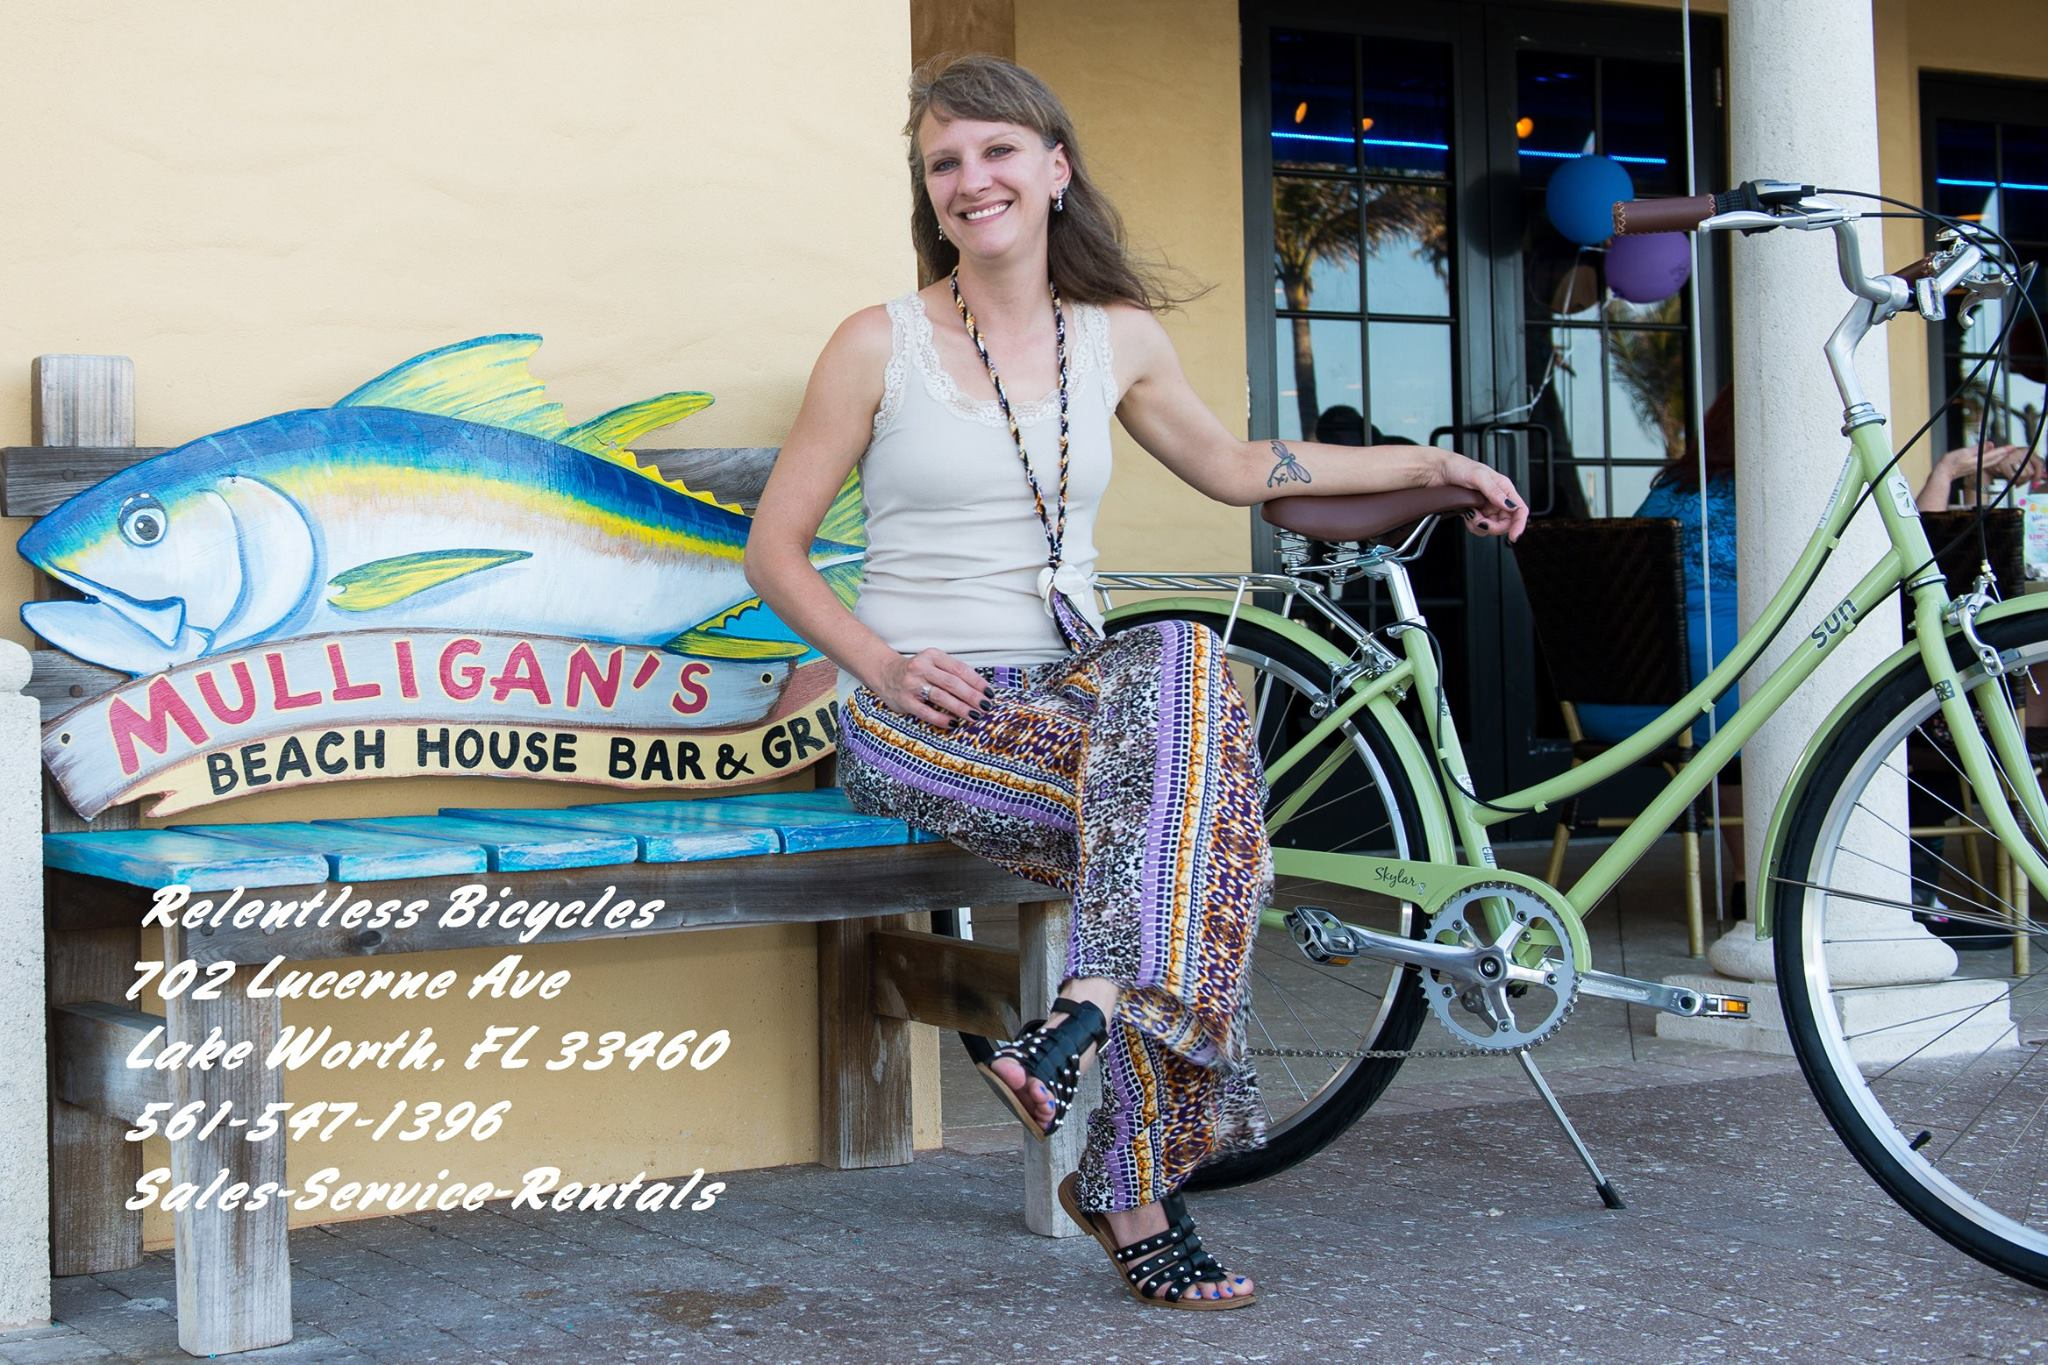 Relentless Bicycles - Lake Worth Organization